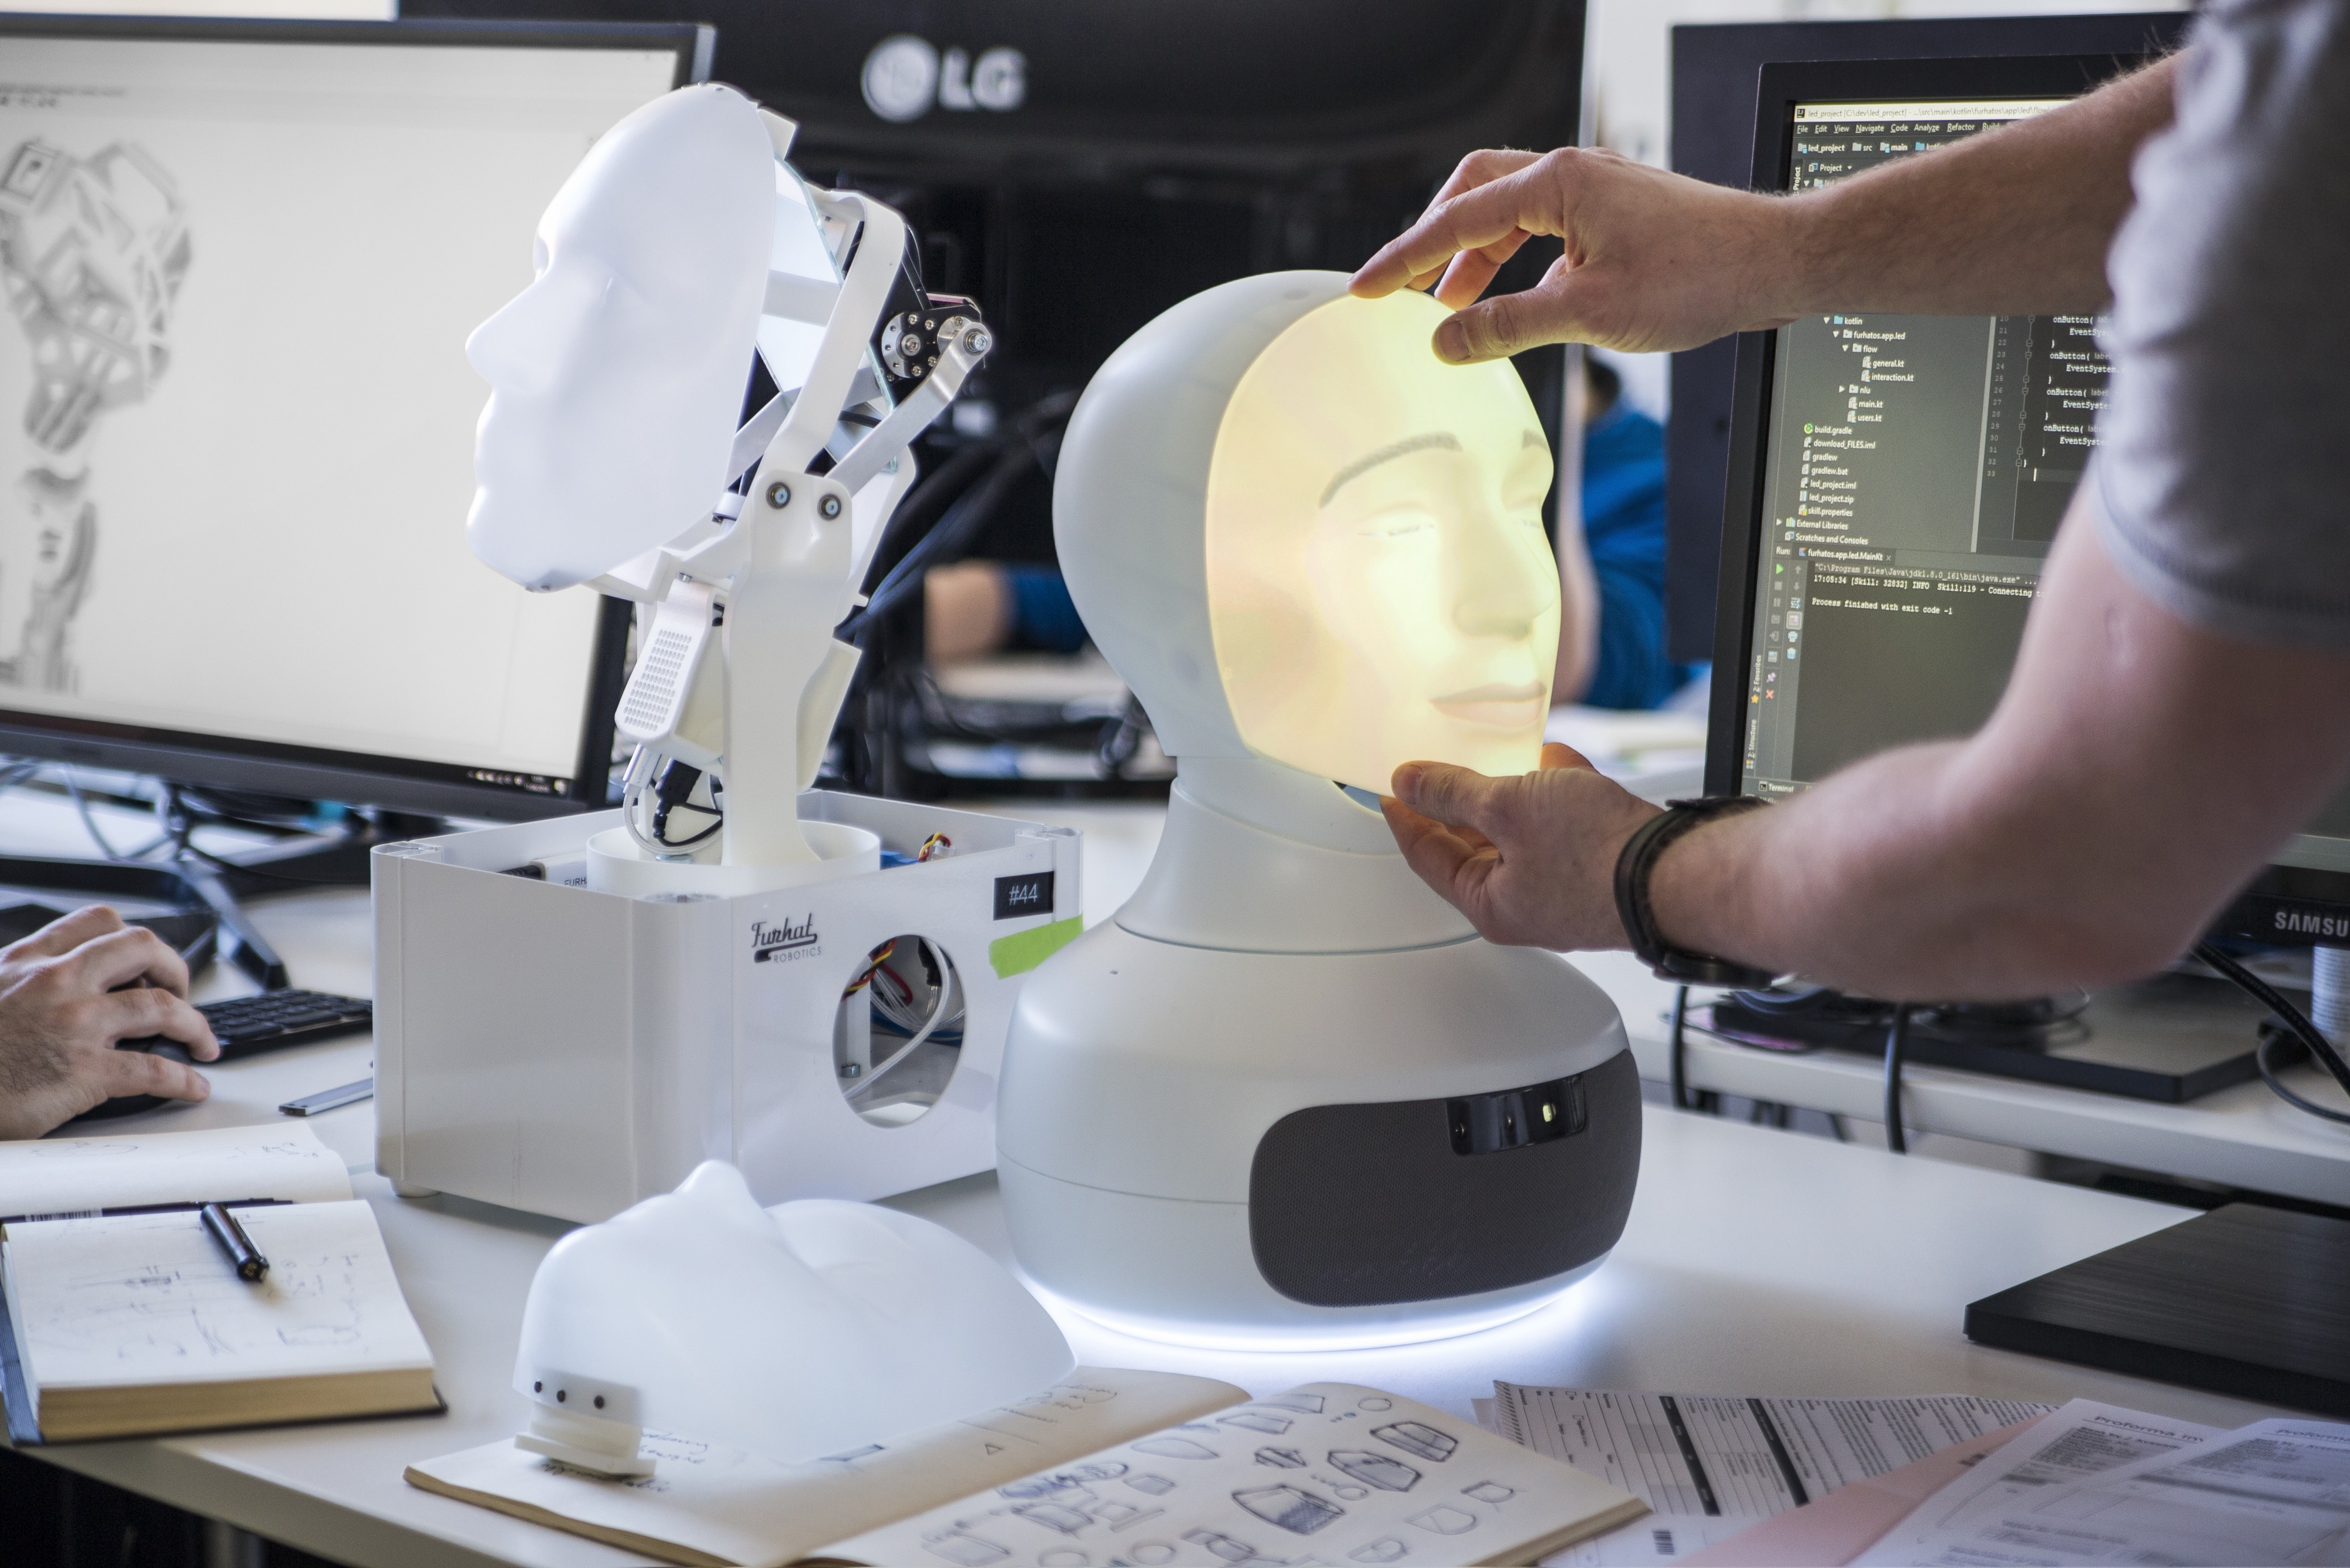 Changing the face of the robot